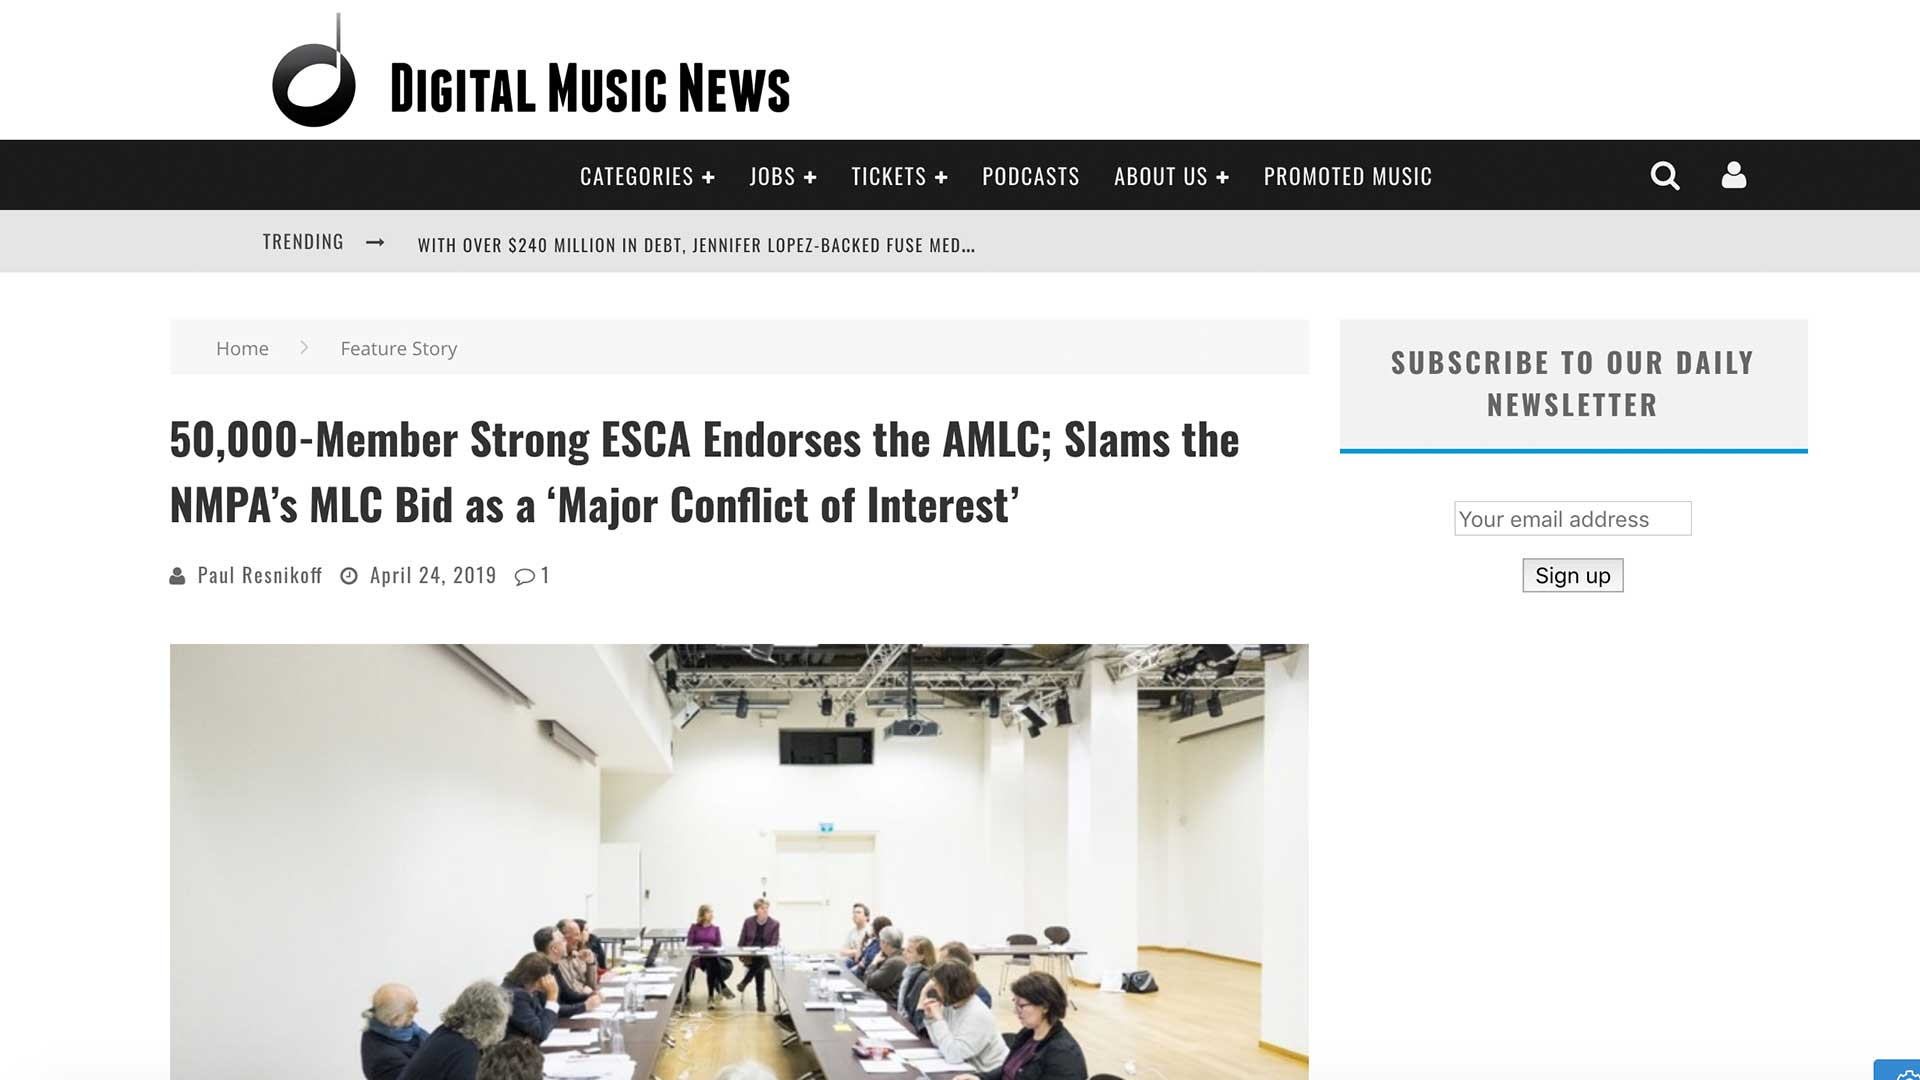 Fairness Rocks News 50,000-Member Strong ESCA Endorses the AMLC; Slams the NMPA's MLC Bid as a 'Major Conflict of Interest'